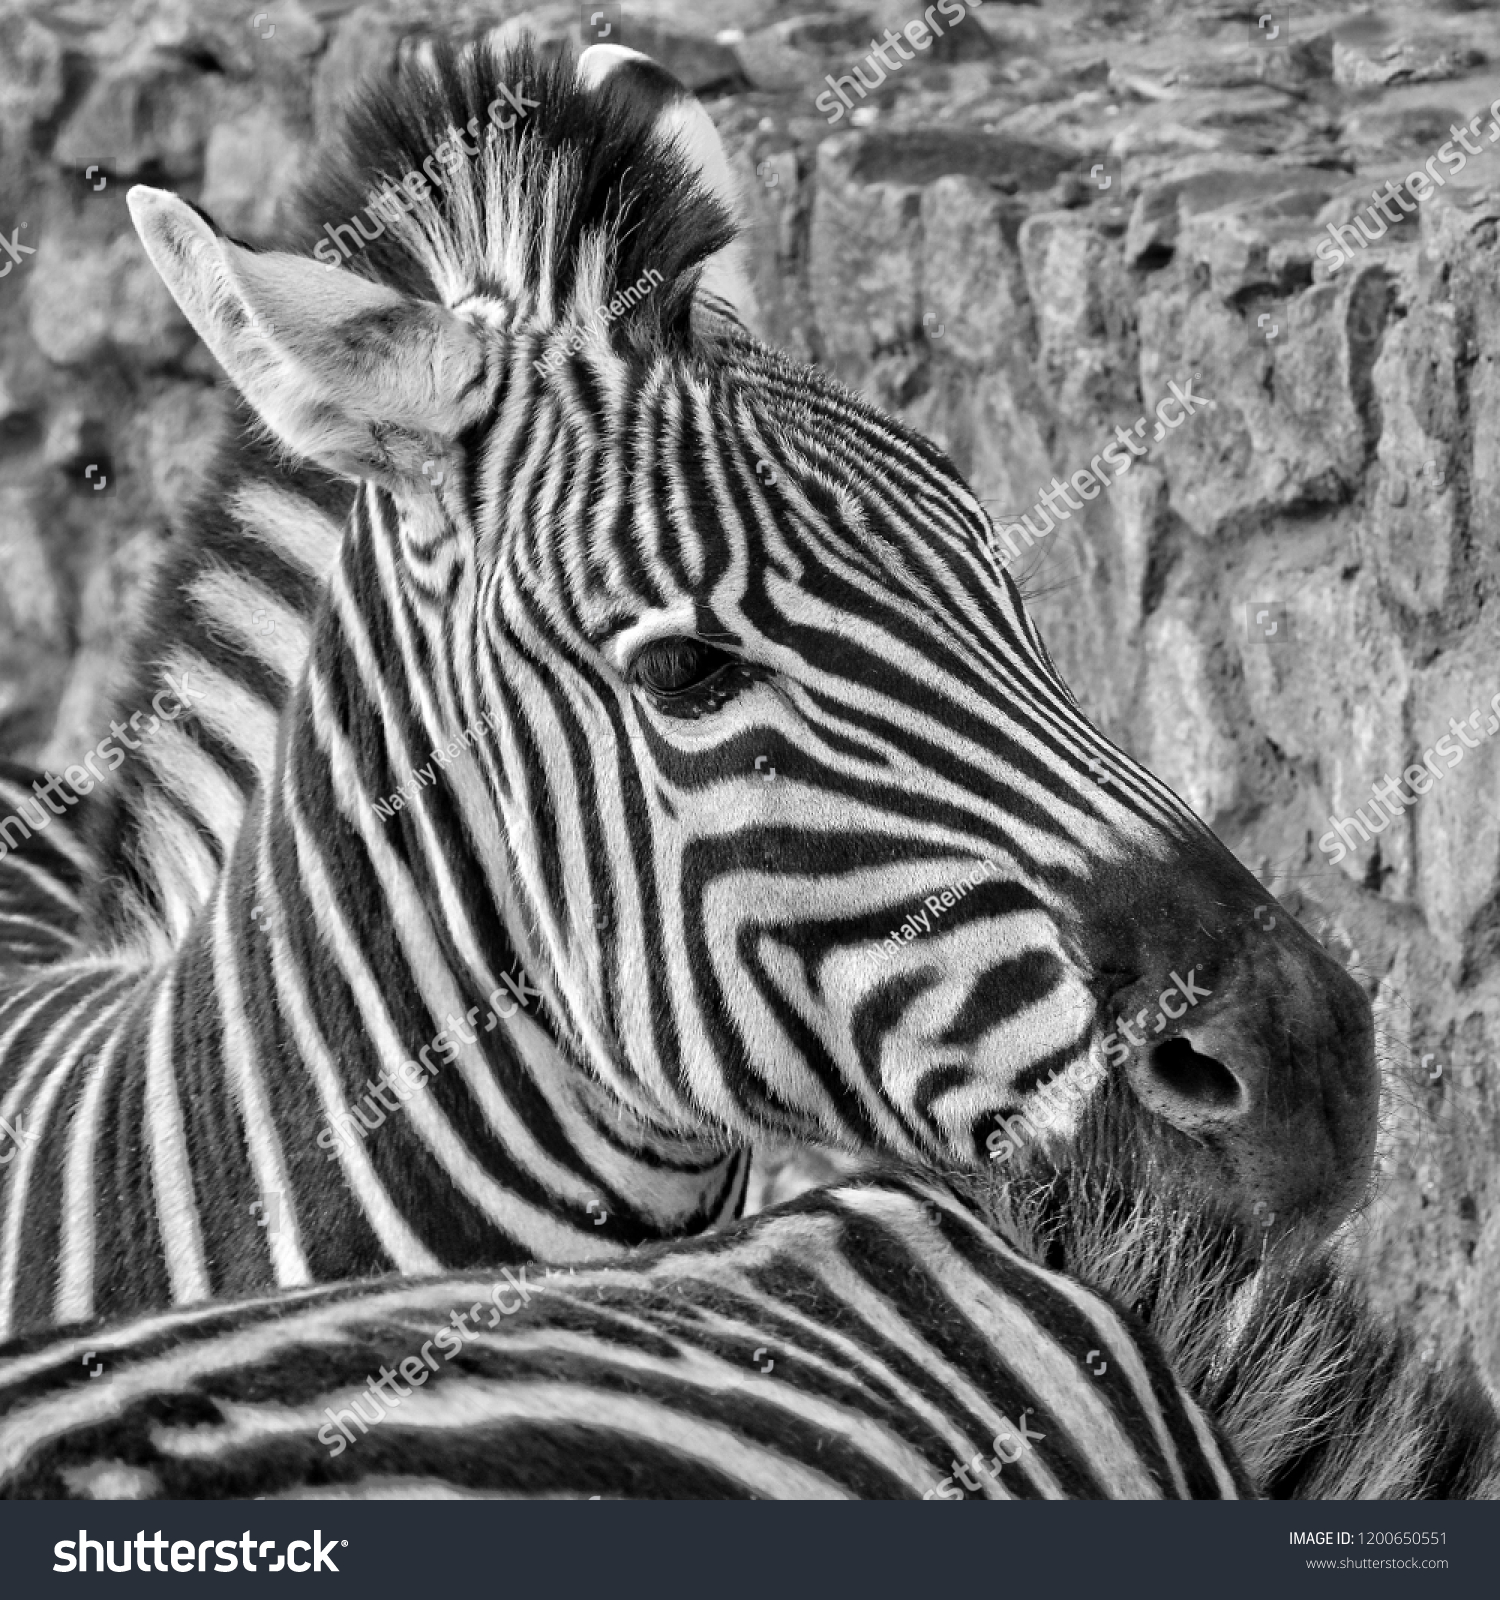 Cute image of african zebras in a zoo black and white photography